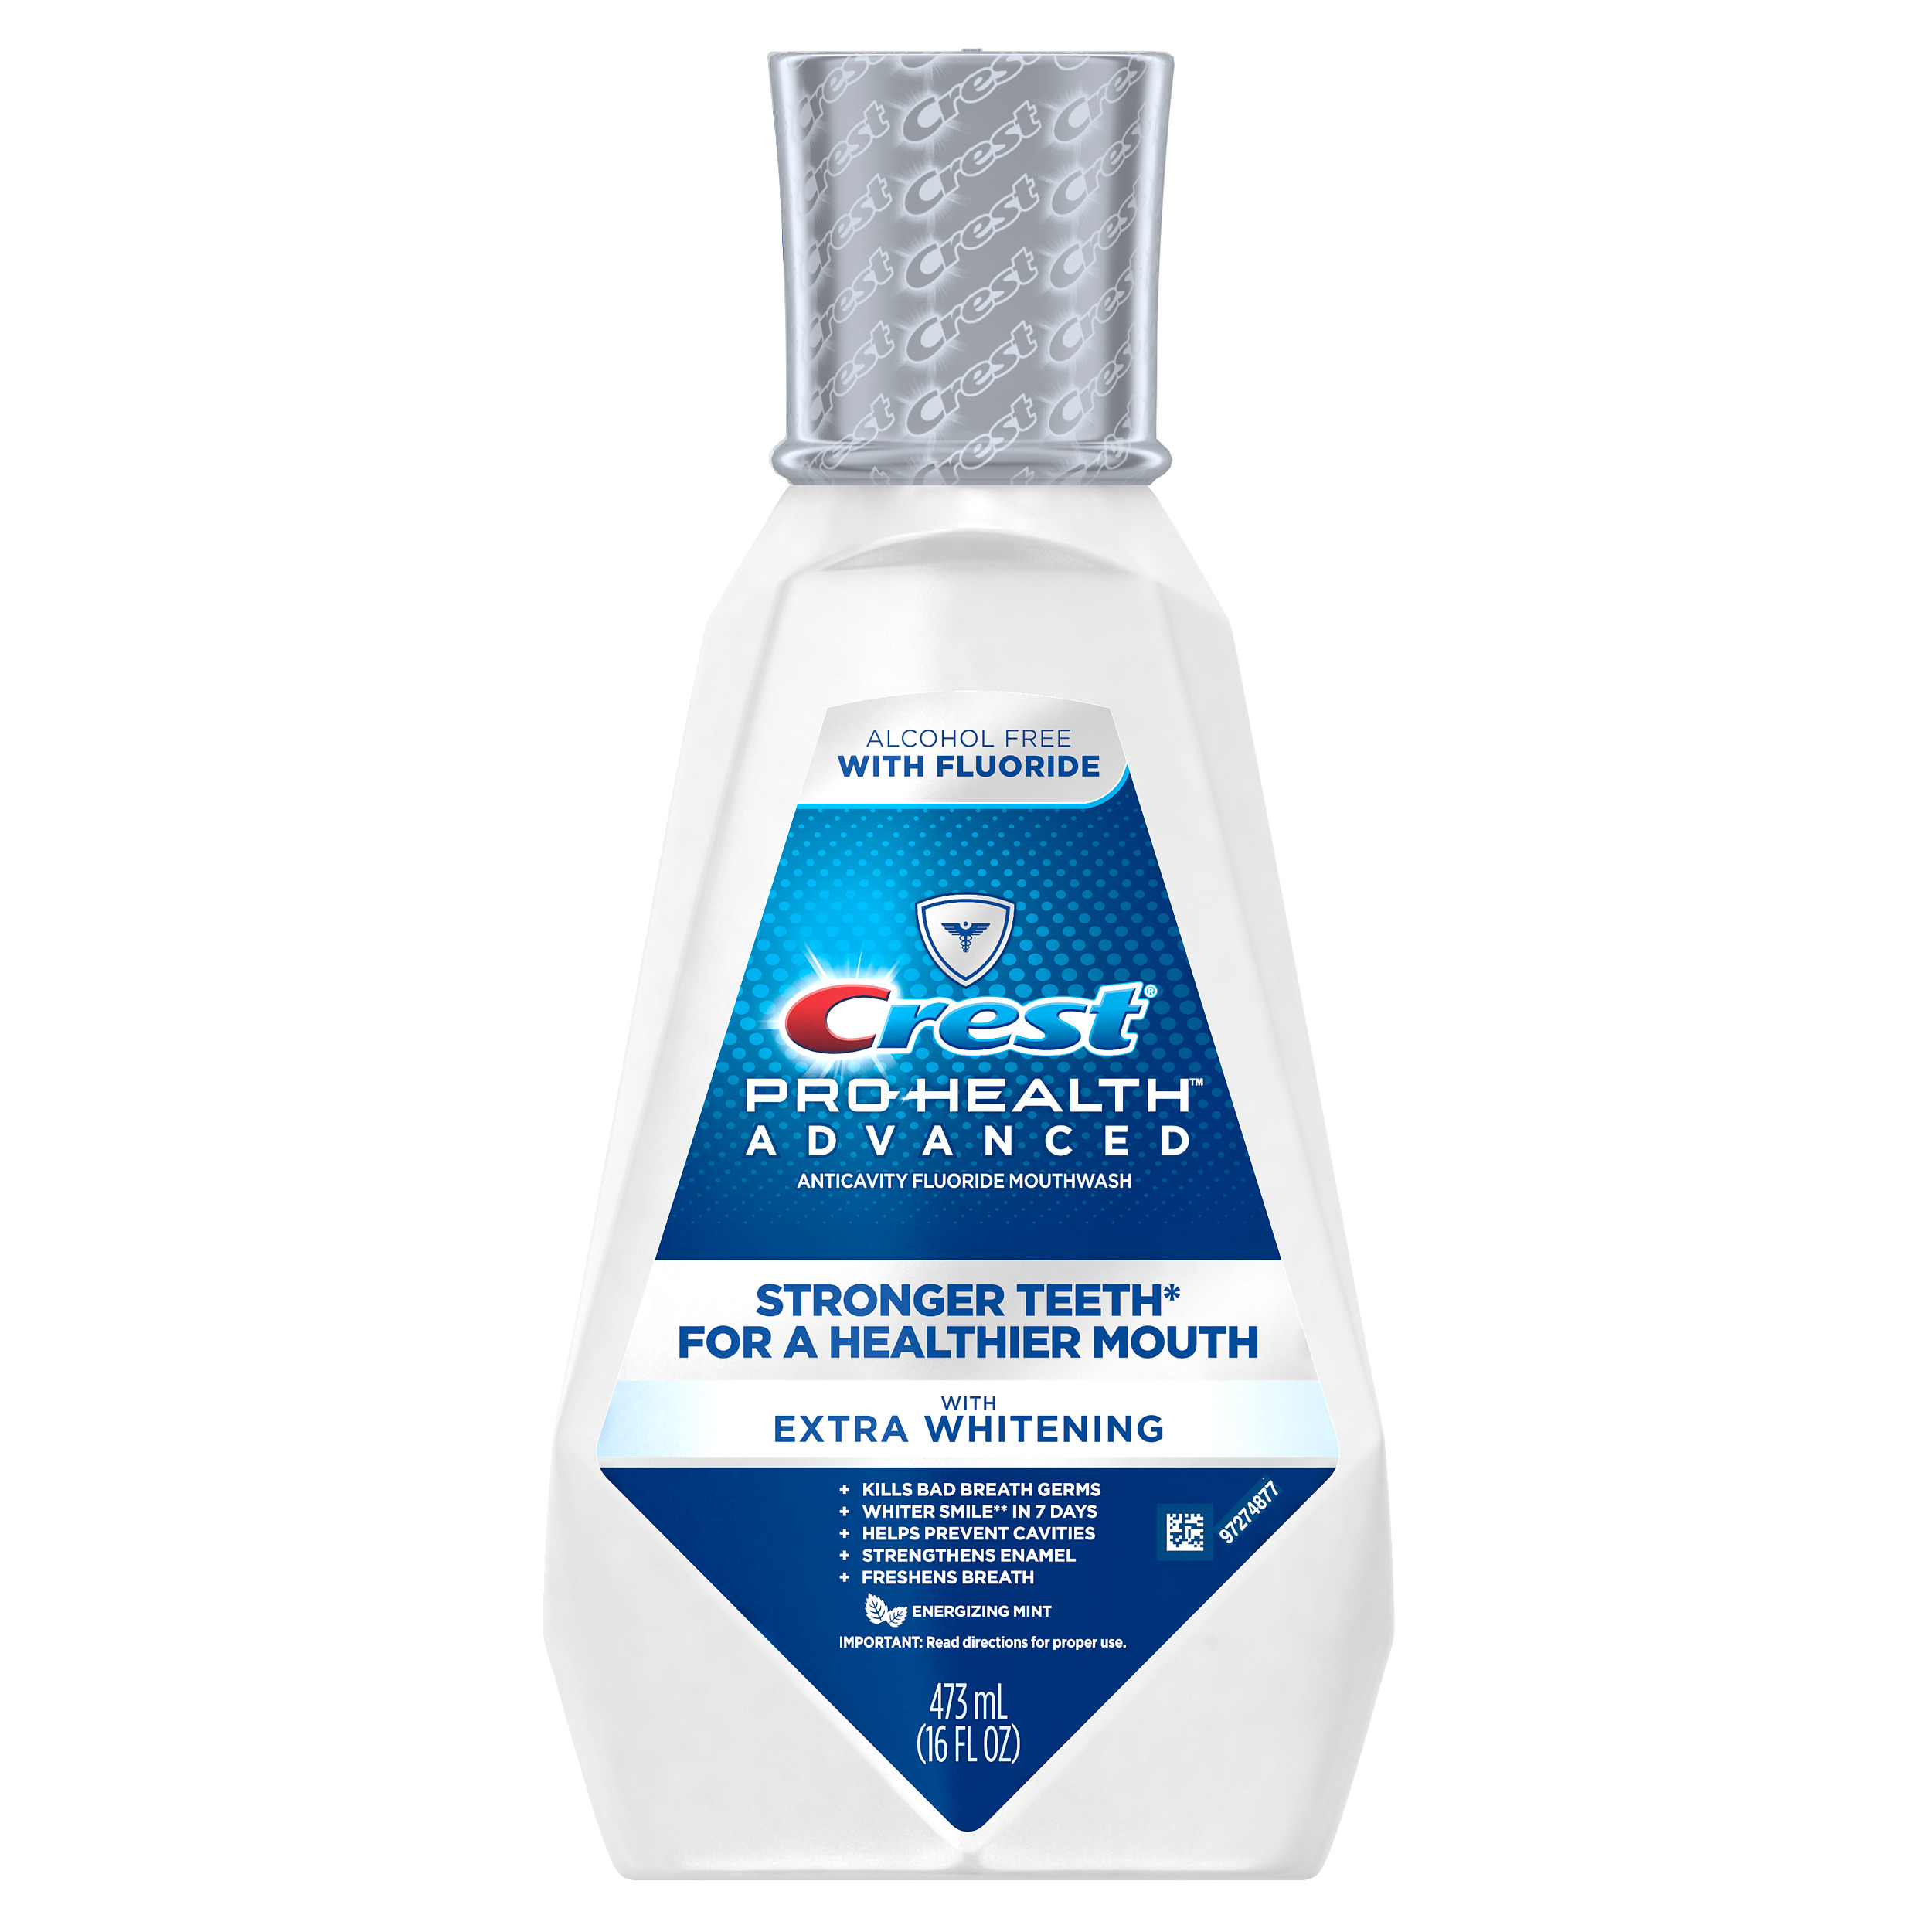 Crest Pro-Health Advanced Mouthwash with Extra Whitening, Energizing Mint Flavor, 16 fl.oz.